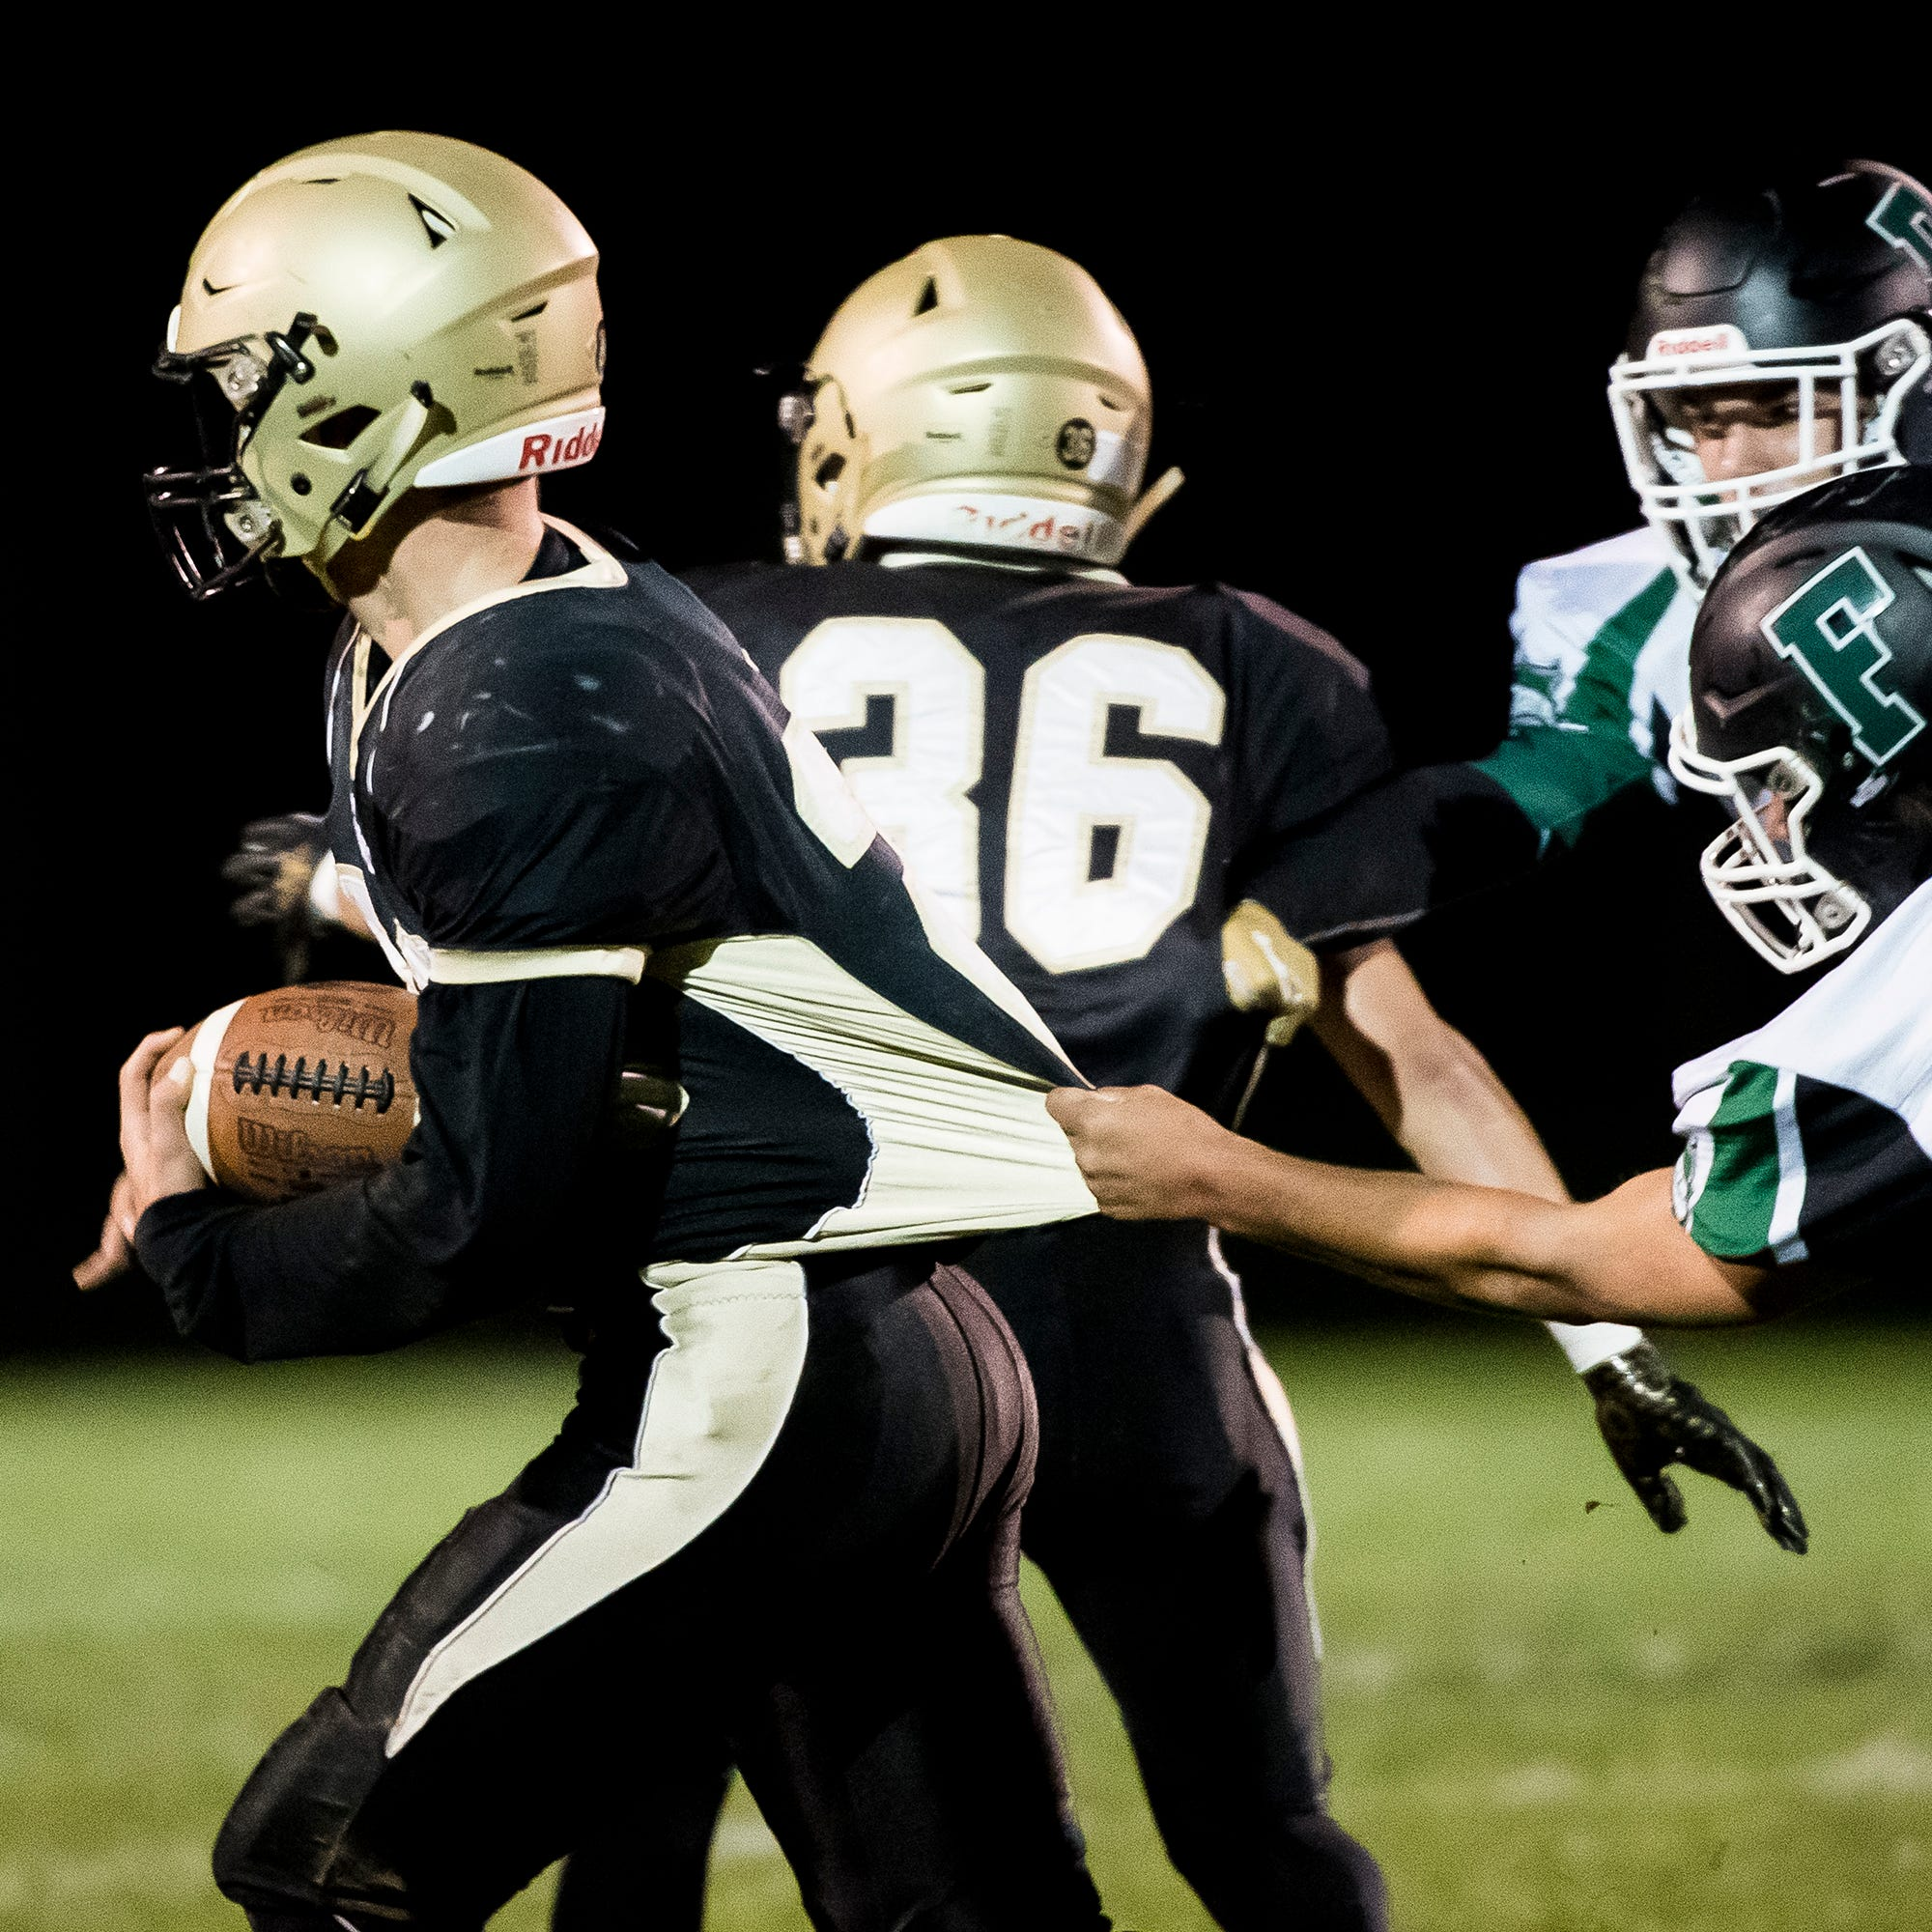 Delone Catholic pummels Fairfield as pivotal Division III clash looms